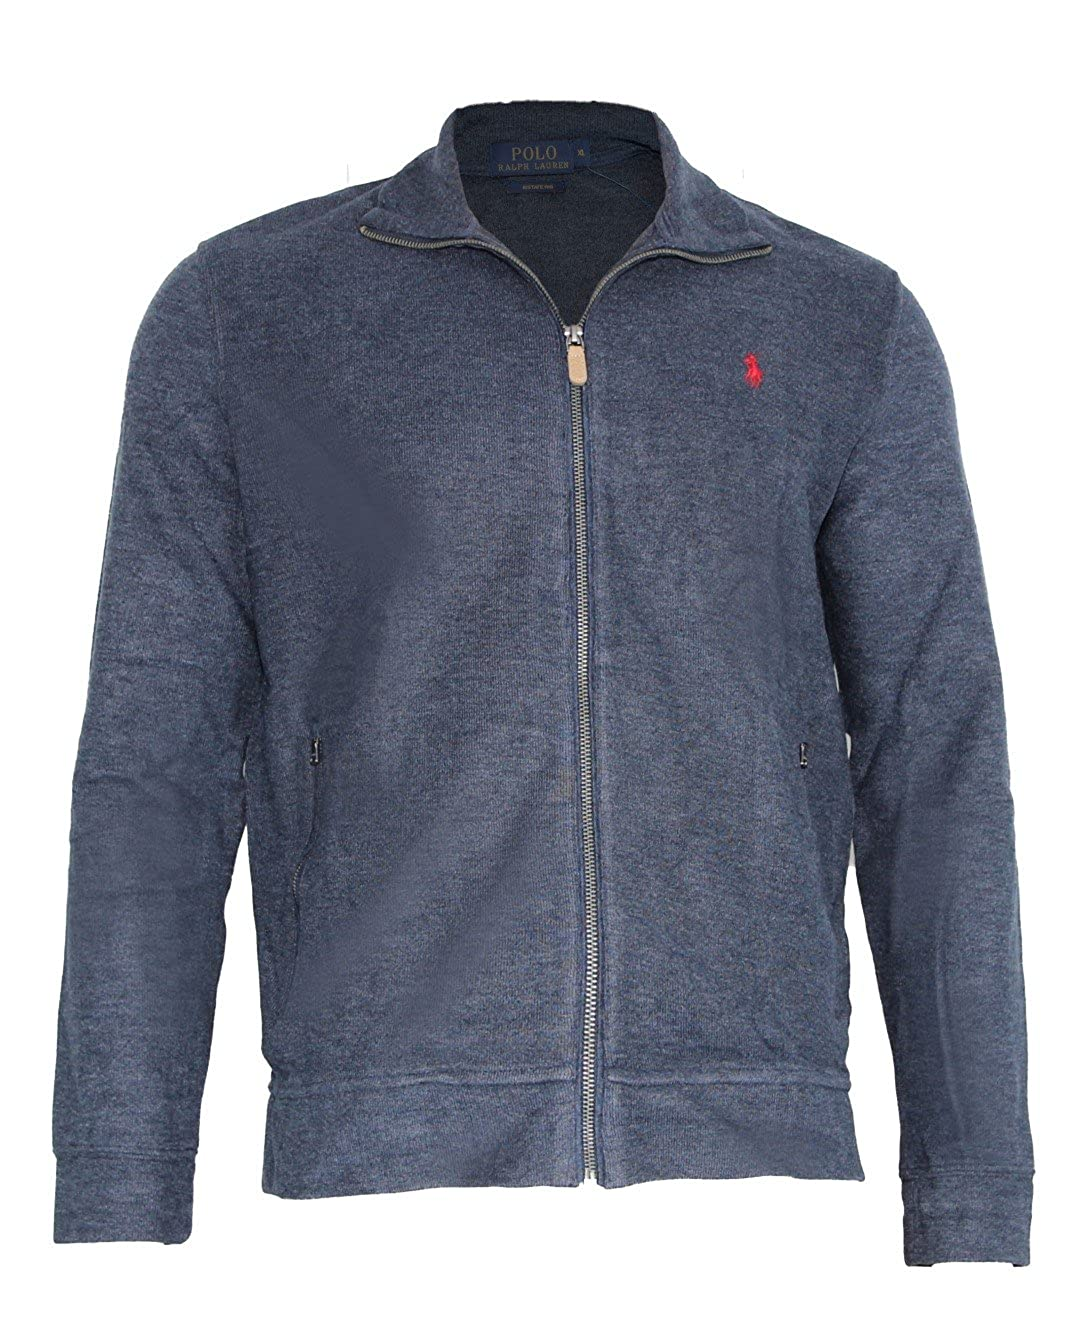 b475ac4234ff49 Polo Ralph Lauren Herren Sweatjacke Estate Rib Langarm Logo Stickerei   Amazon.de  Bekleidung